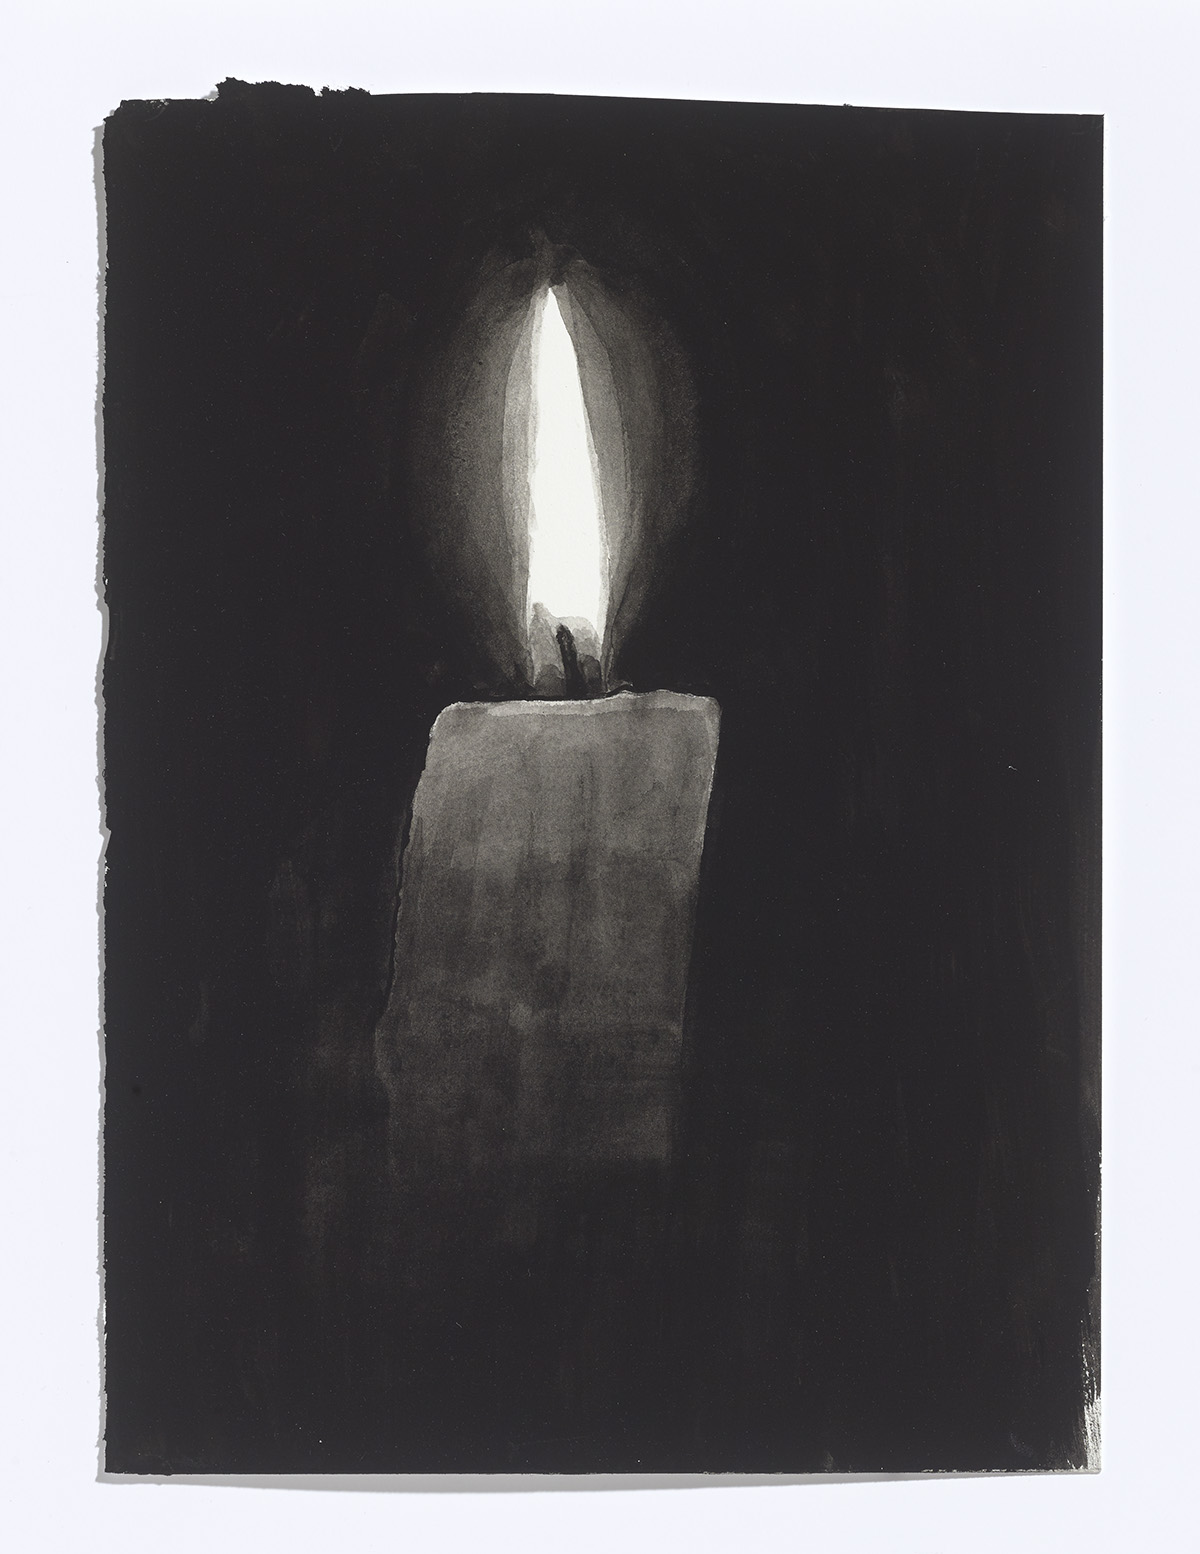 Candle,2017,gouache on paper,10 7/8th x 8 inches $1100 CAD $900 USD